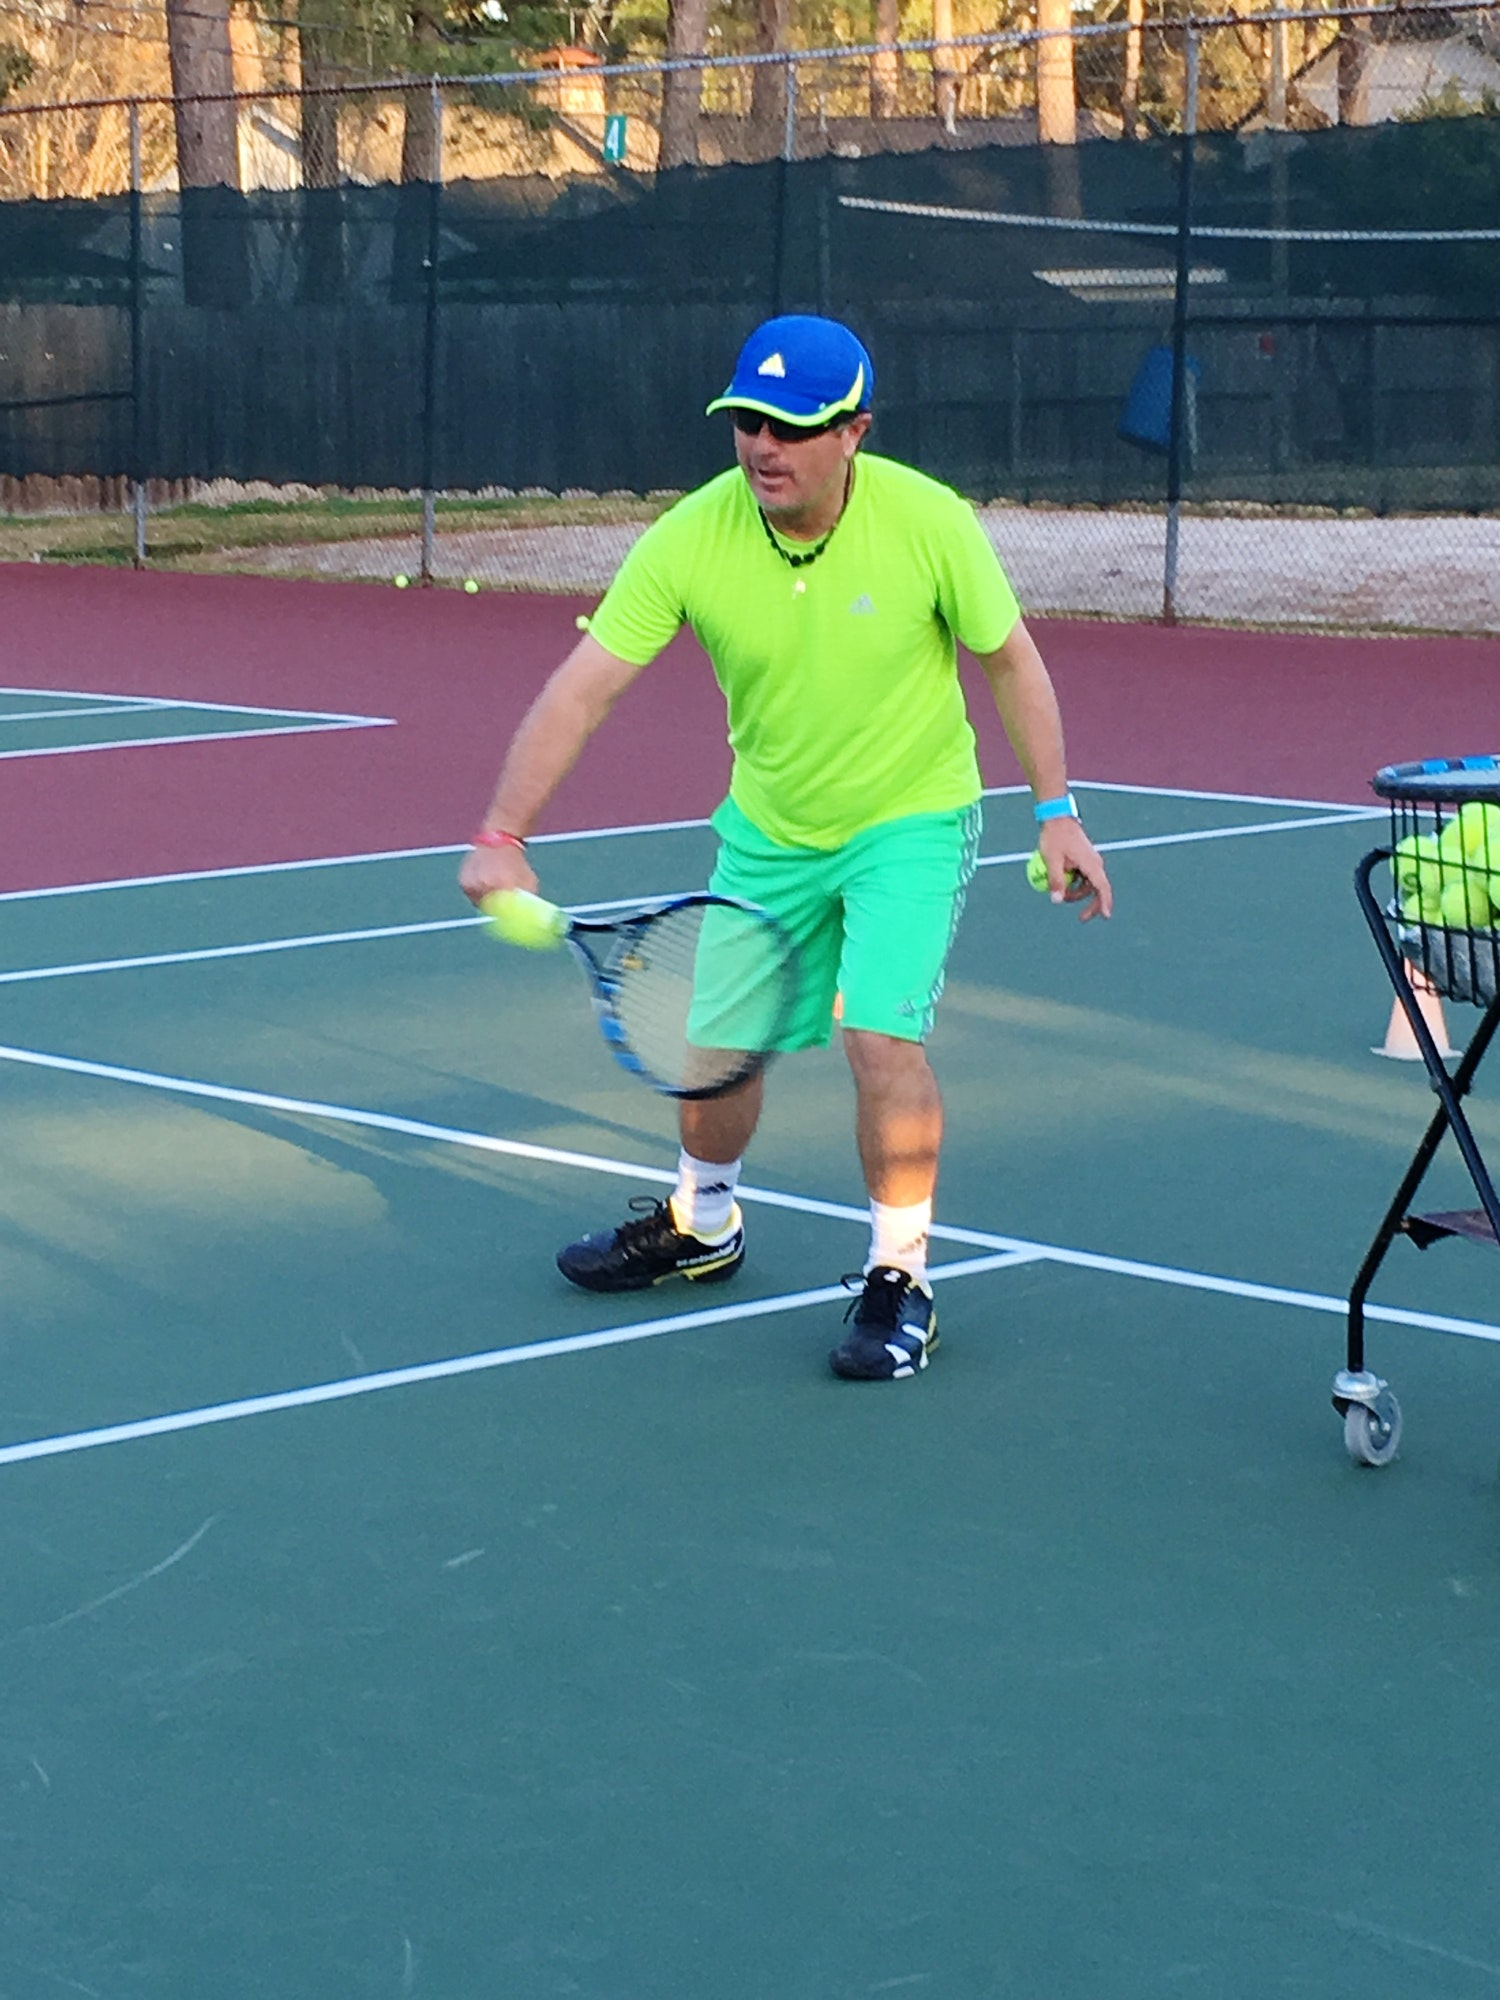 Alfredo R. teaches tennis lessons in Houston, TX